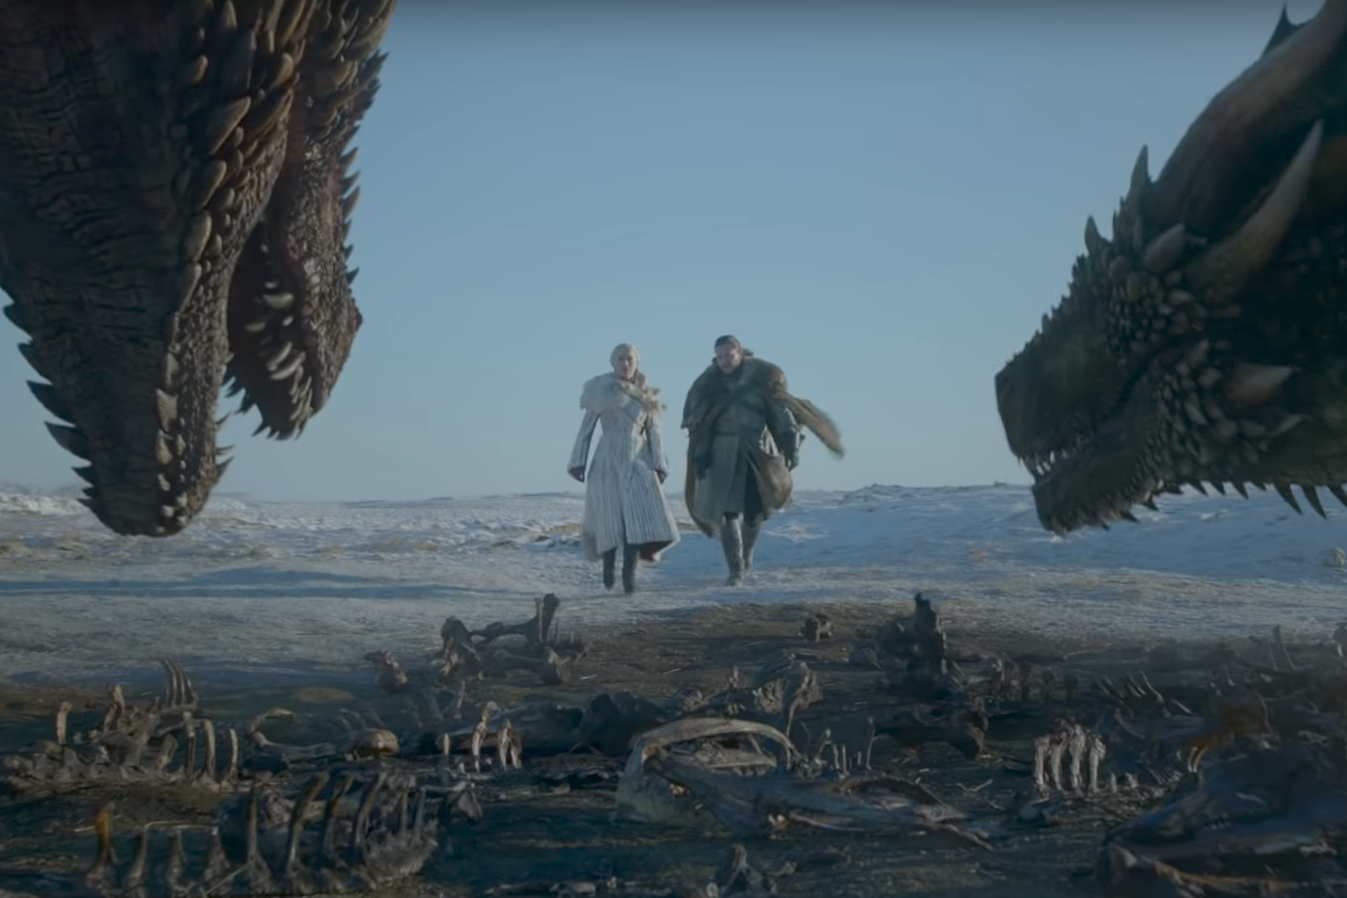 Game Of Thrones Season 8 Trailer Shot By Shot Breakdown From Jon